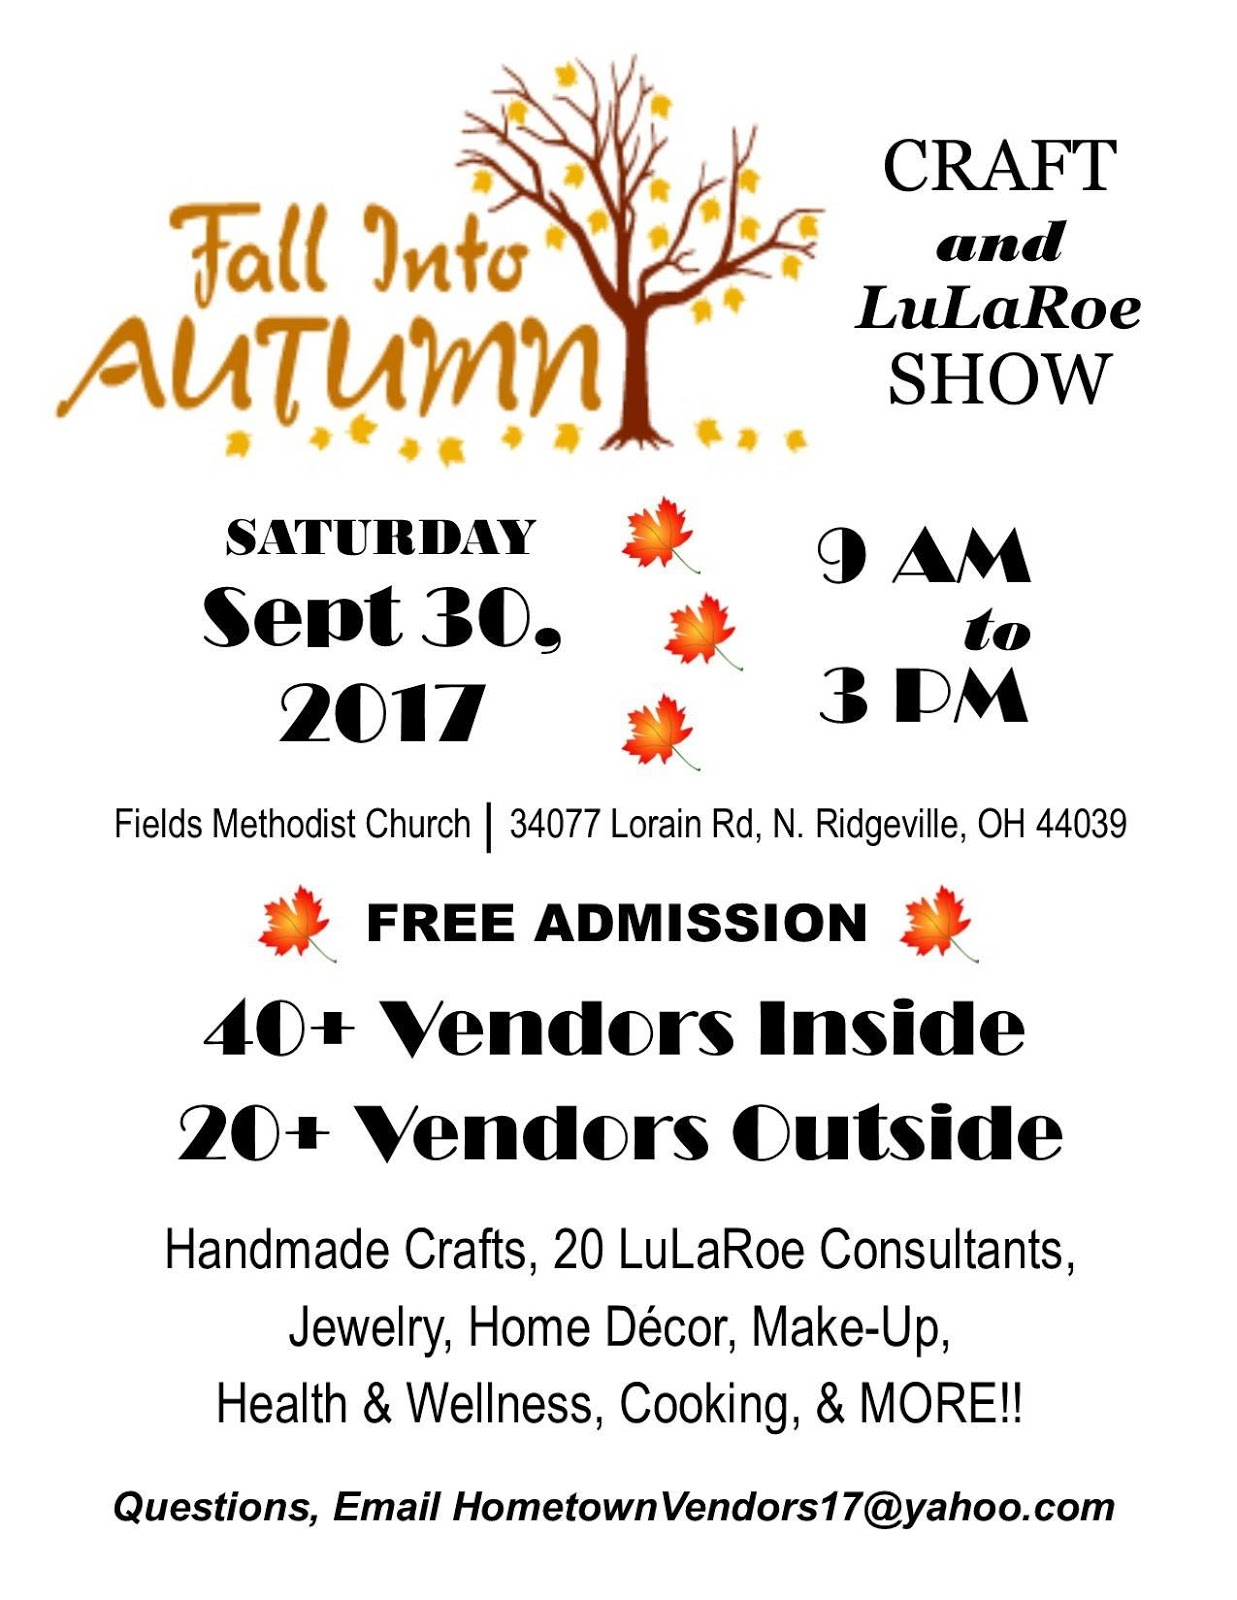 Start By Shopping Outside With 20 LuLaRoe Consultants. Then Head Inside To  Shop With Over 40 Local Small Businesses And Crafters.